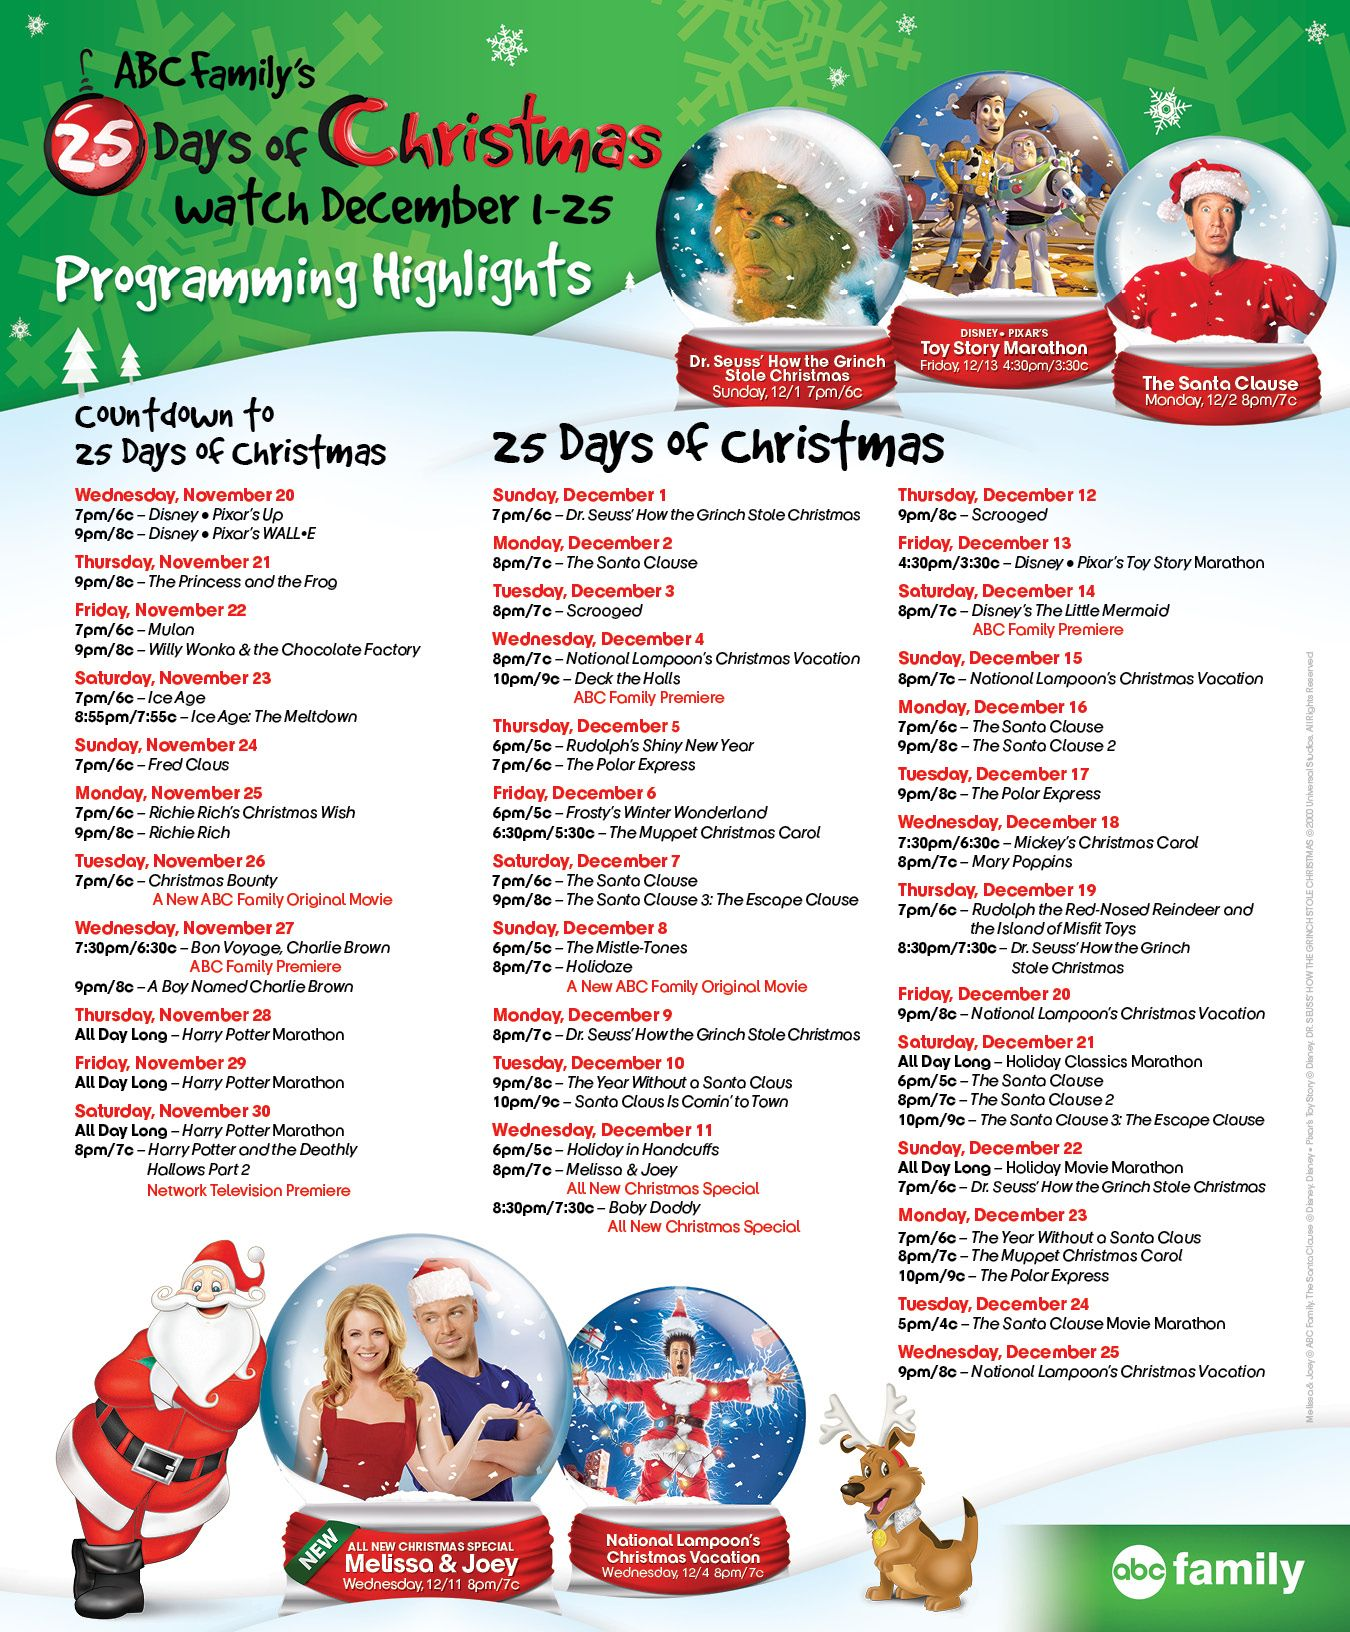 freeform 25 days of christmas 2017 schedule | movies & tv shows